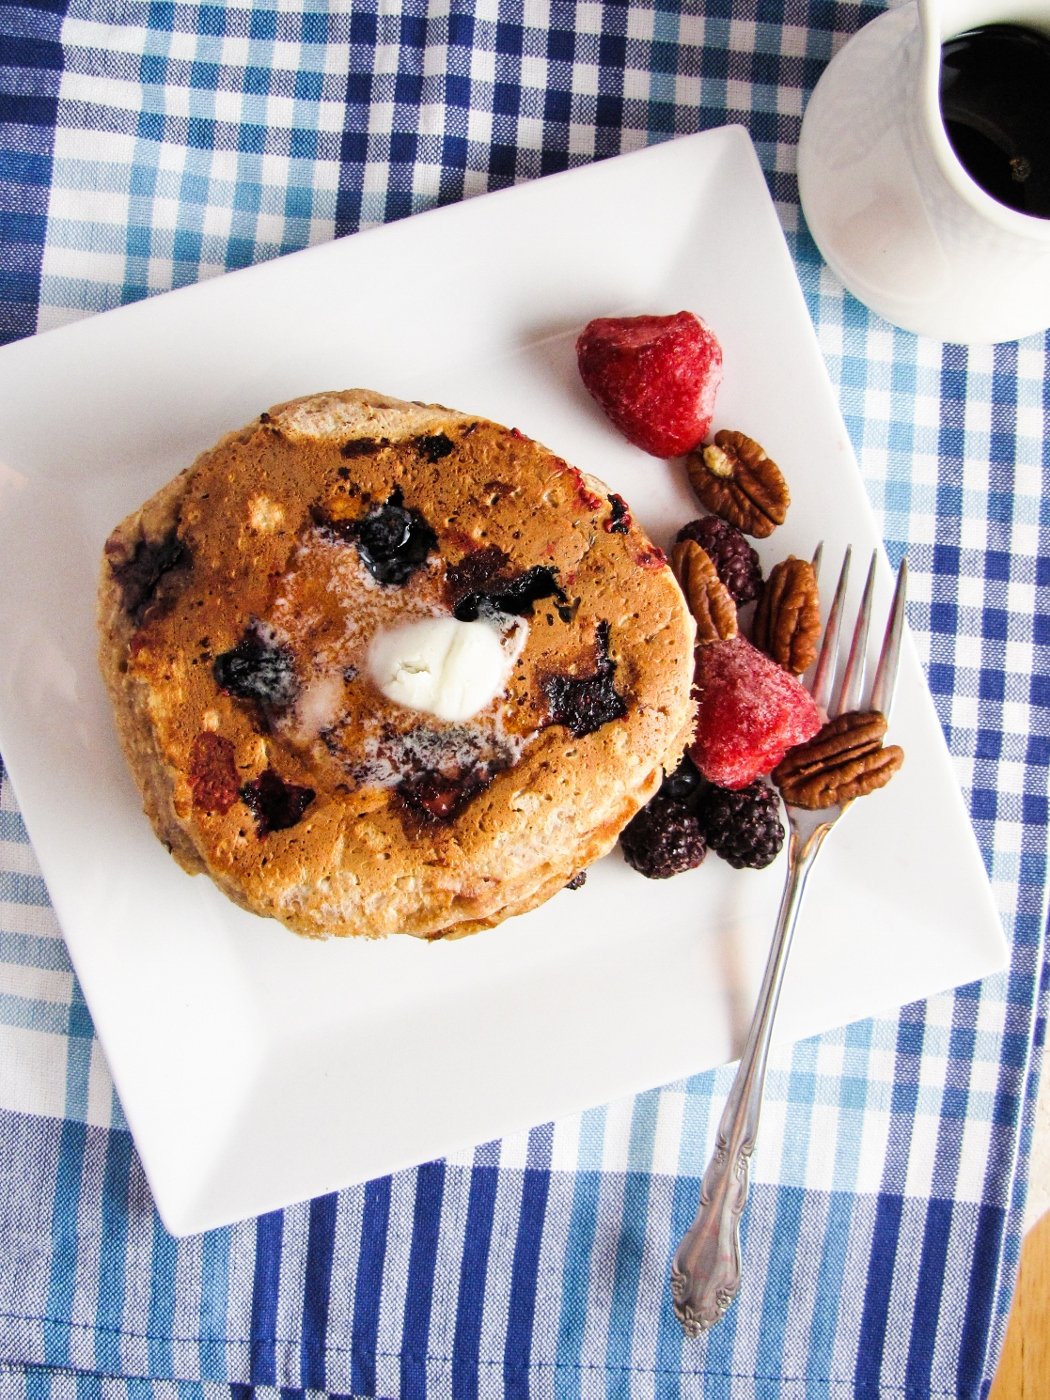 Whole Wheat Fruit and Nut Pancakes | Katie at the Kitchen Door